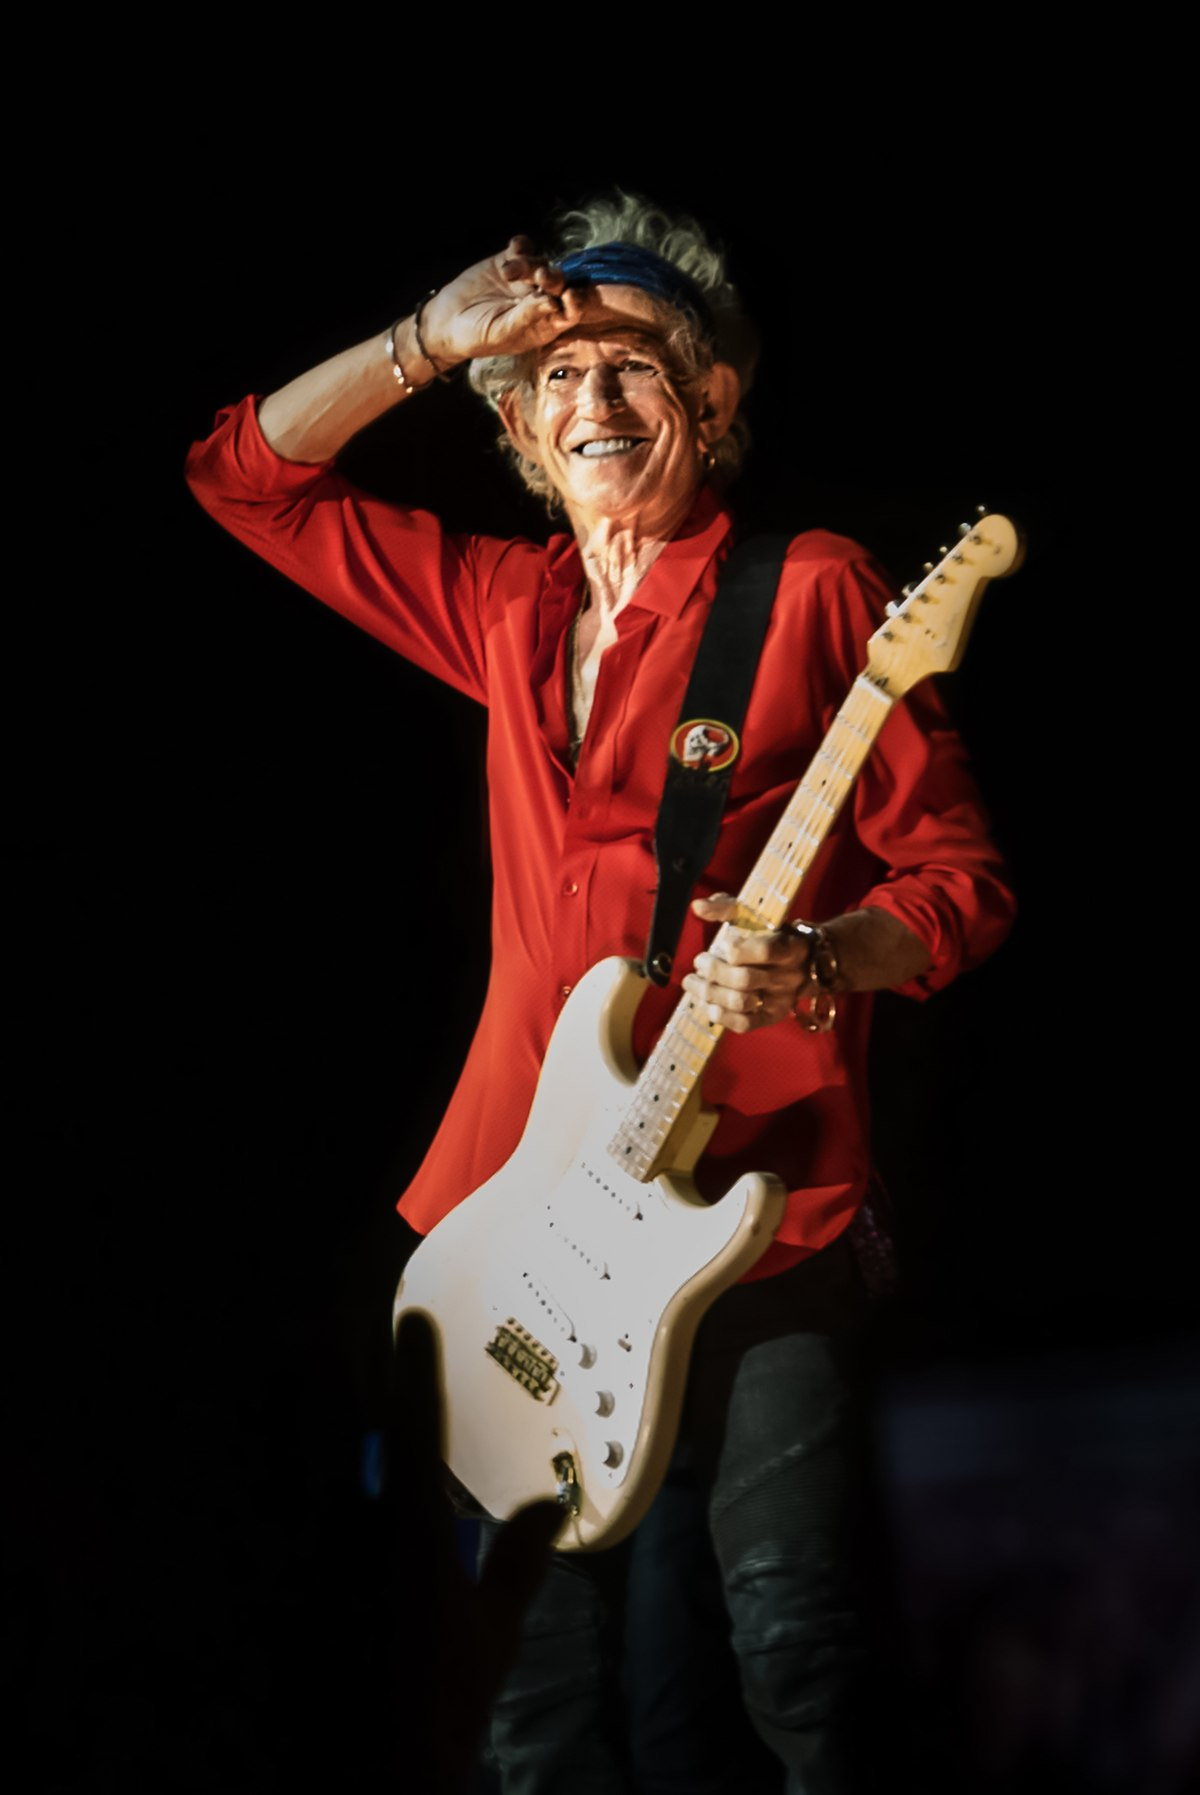 Libro De Keith Richards Keith Richards Wikipedia La Enciclopedia Libre